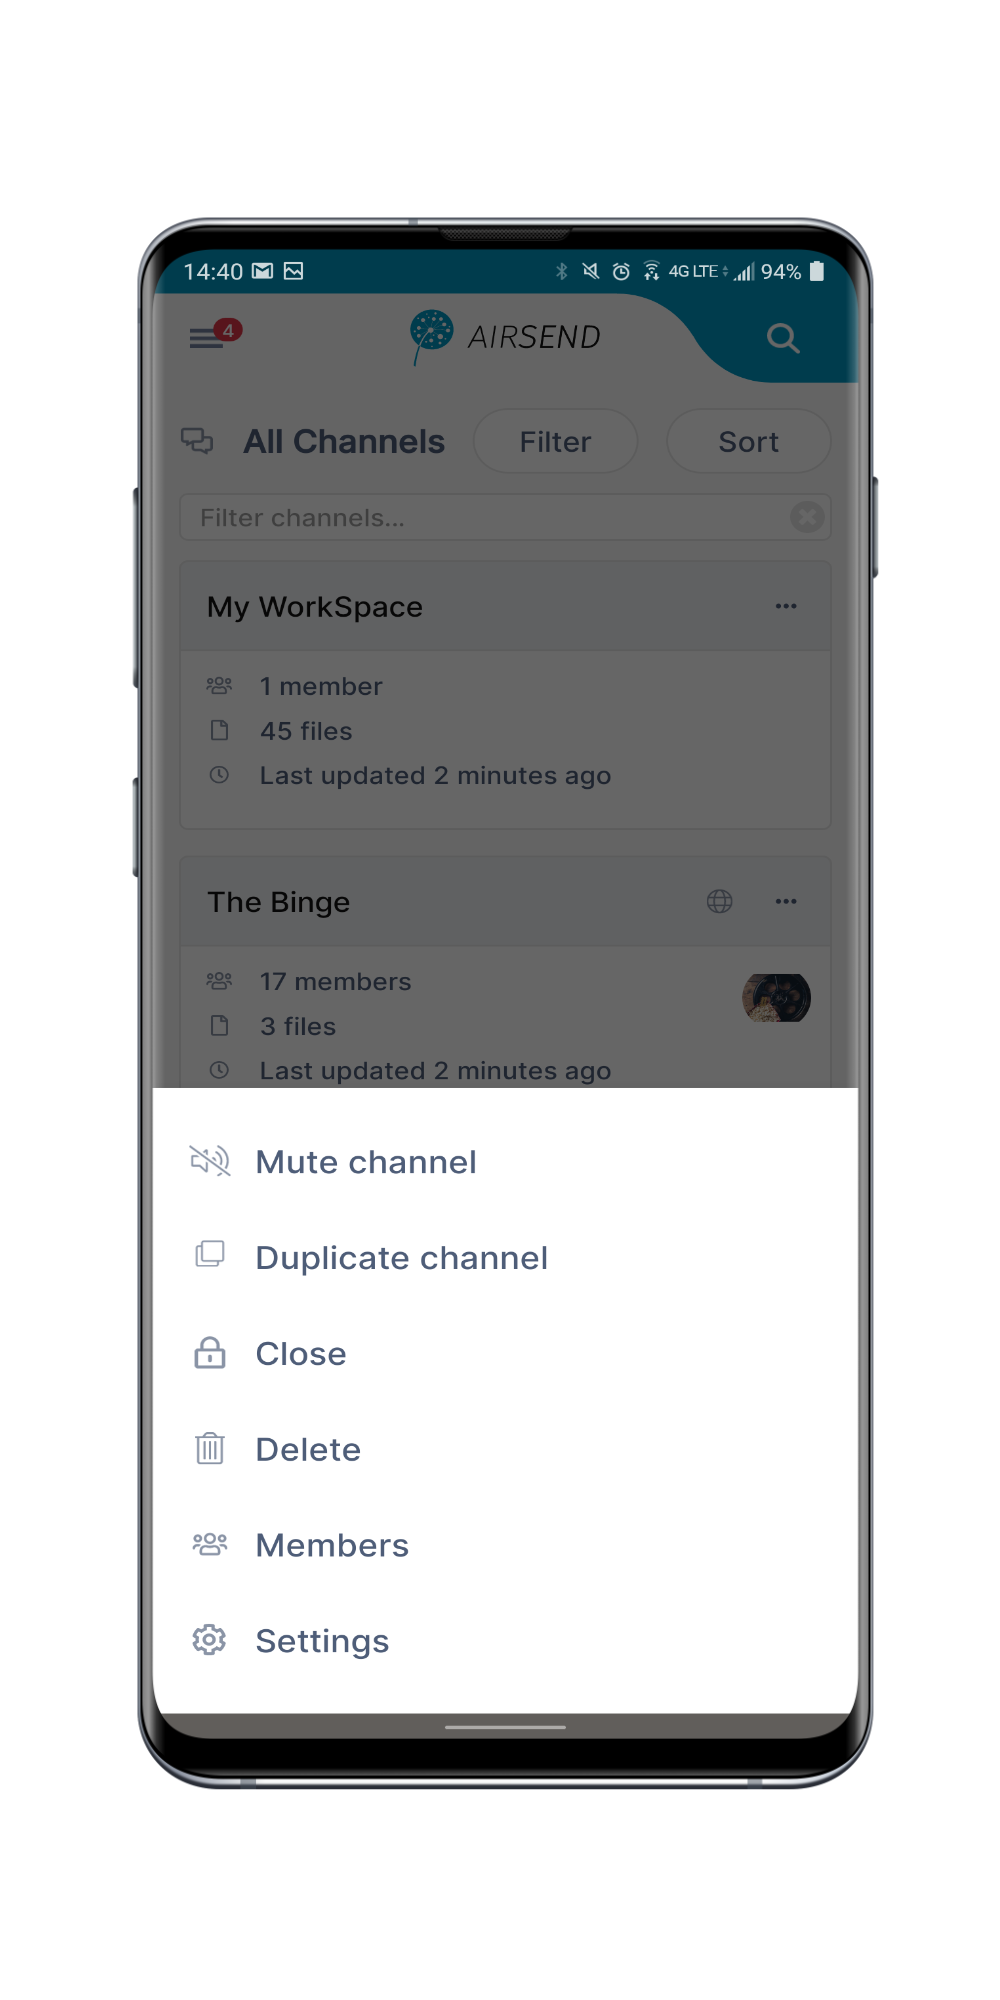 AirSend Android list of options